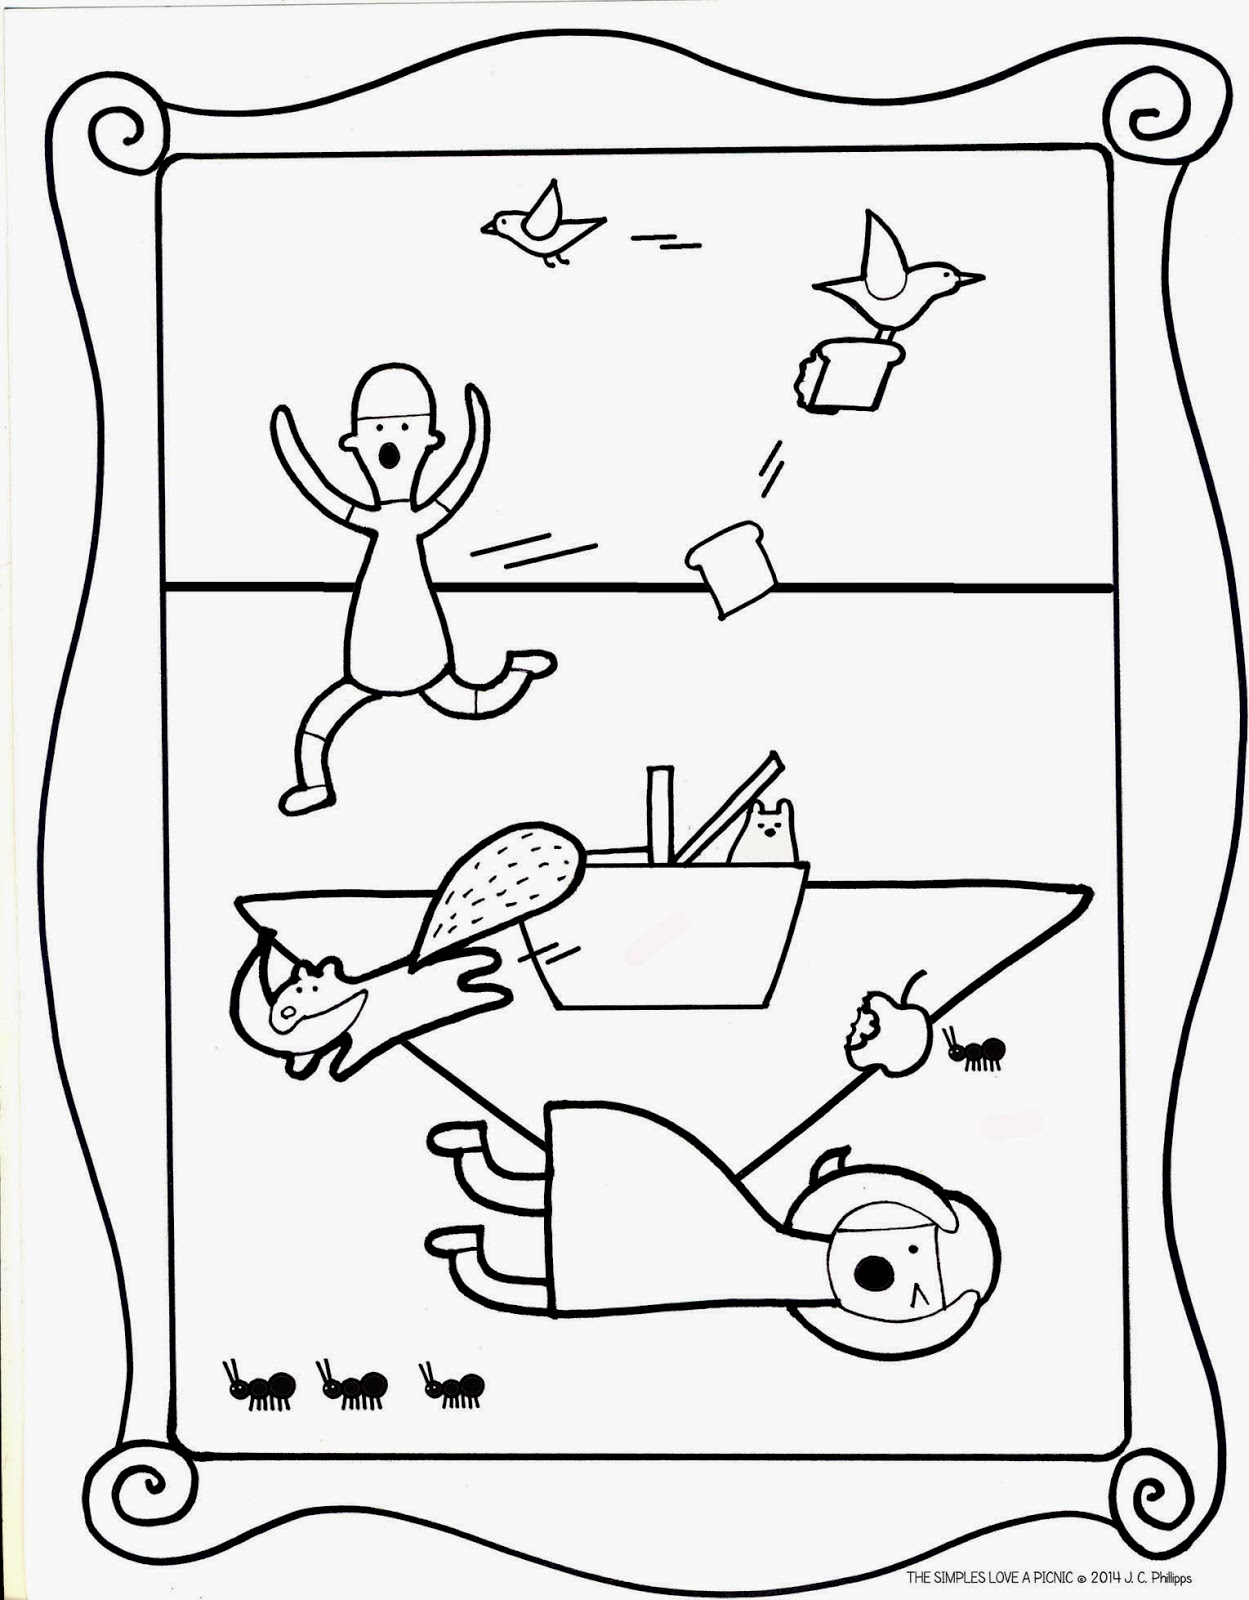 Fraction Coloring Pages At Getcolorings